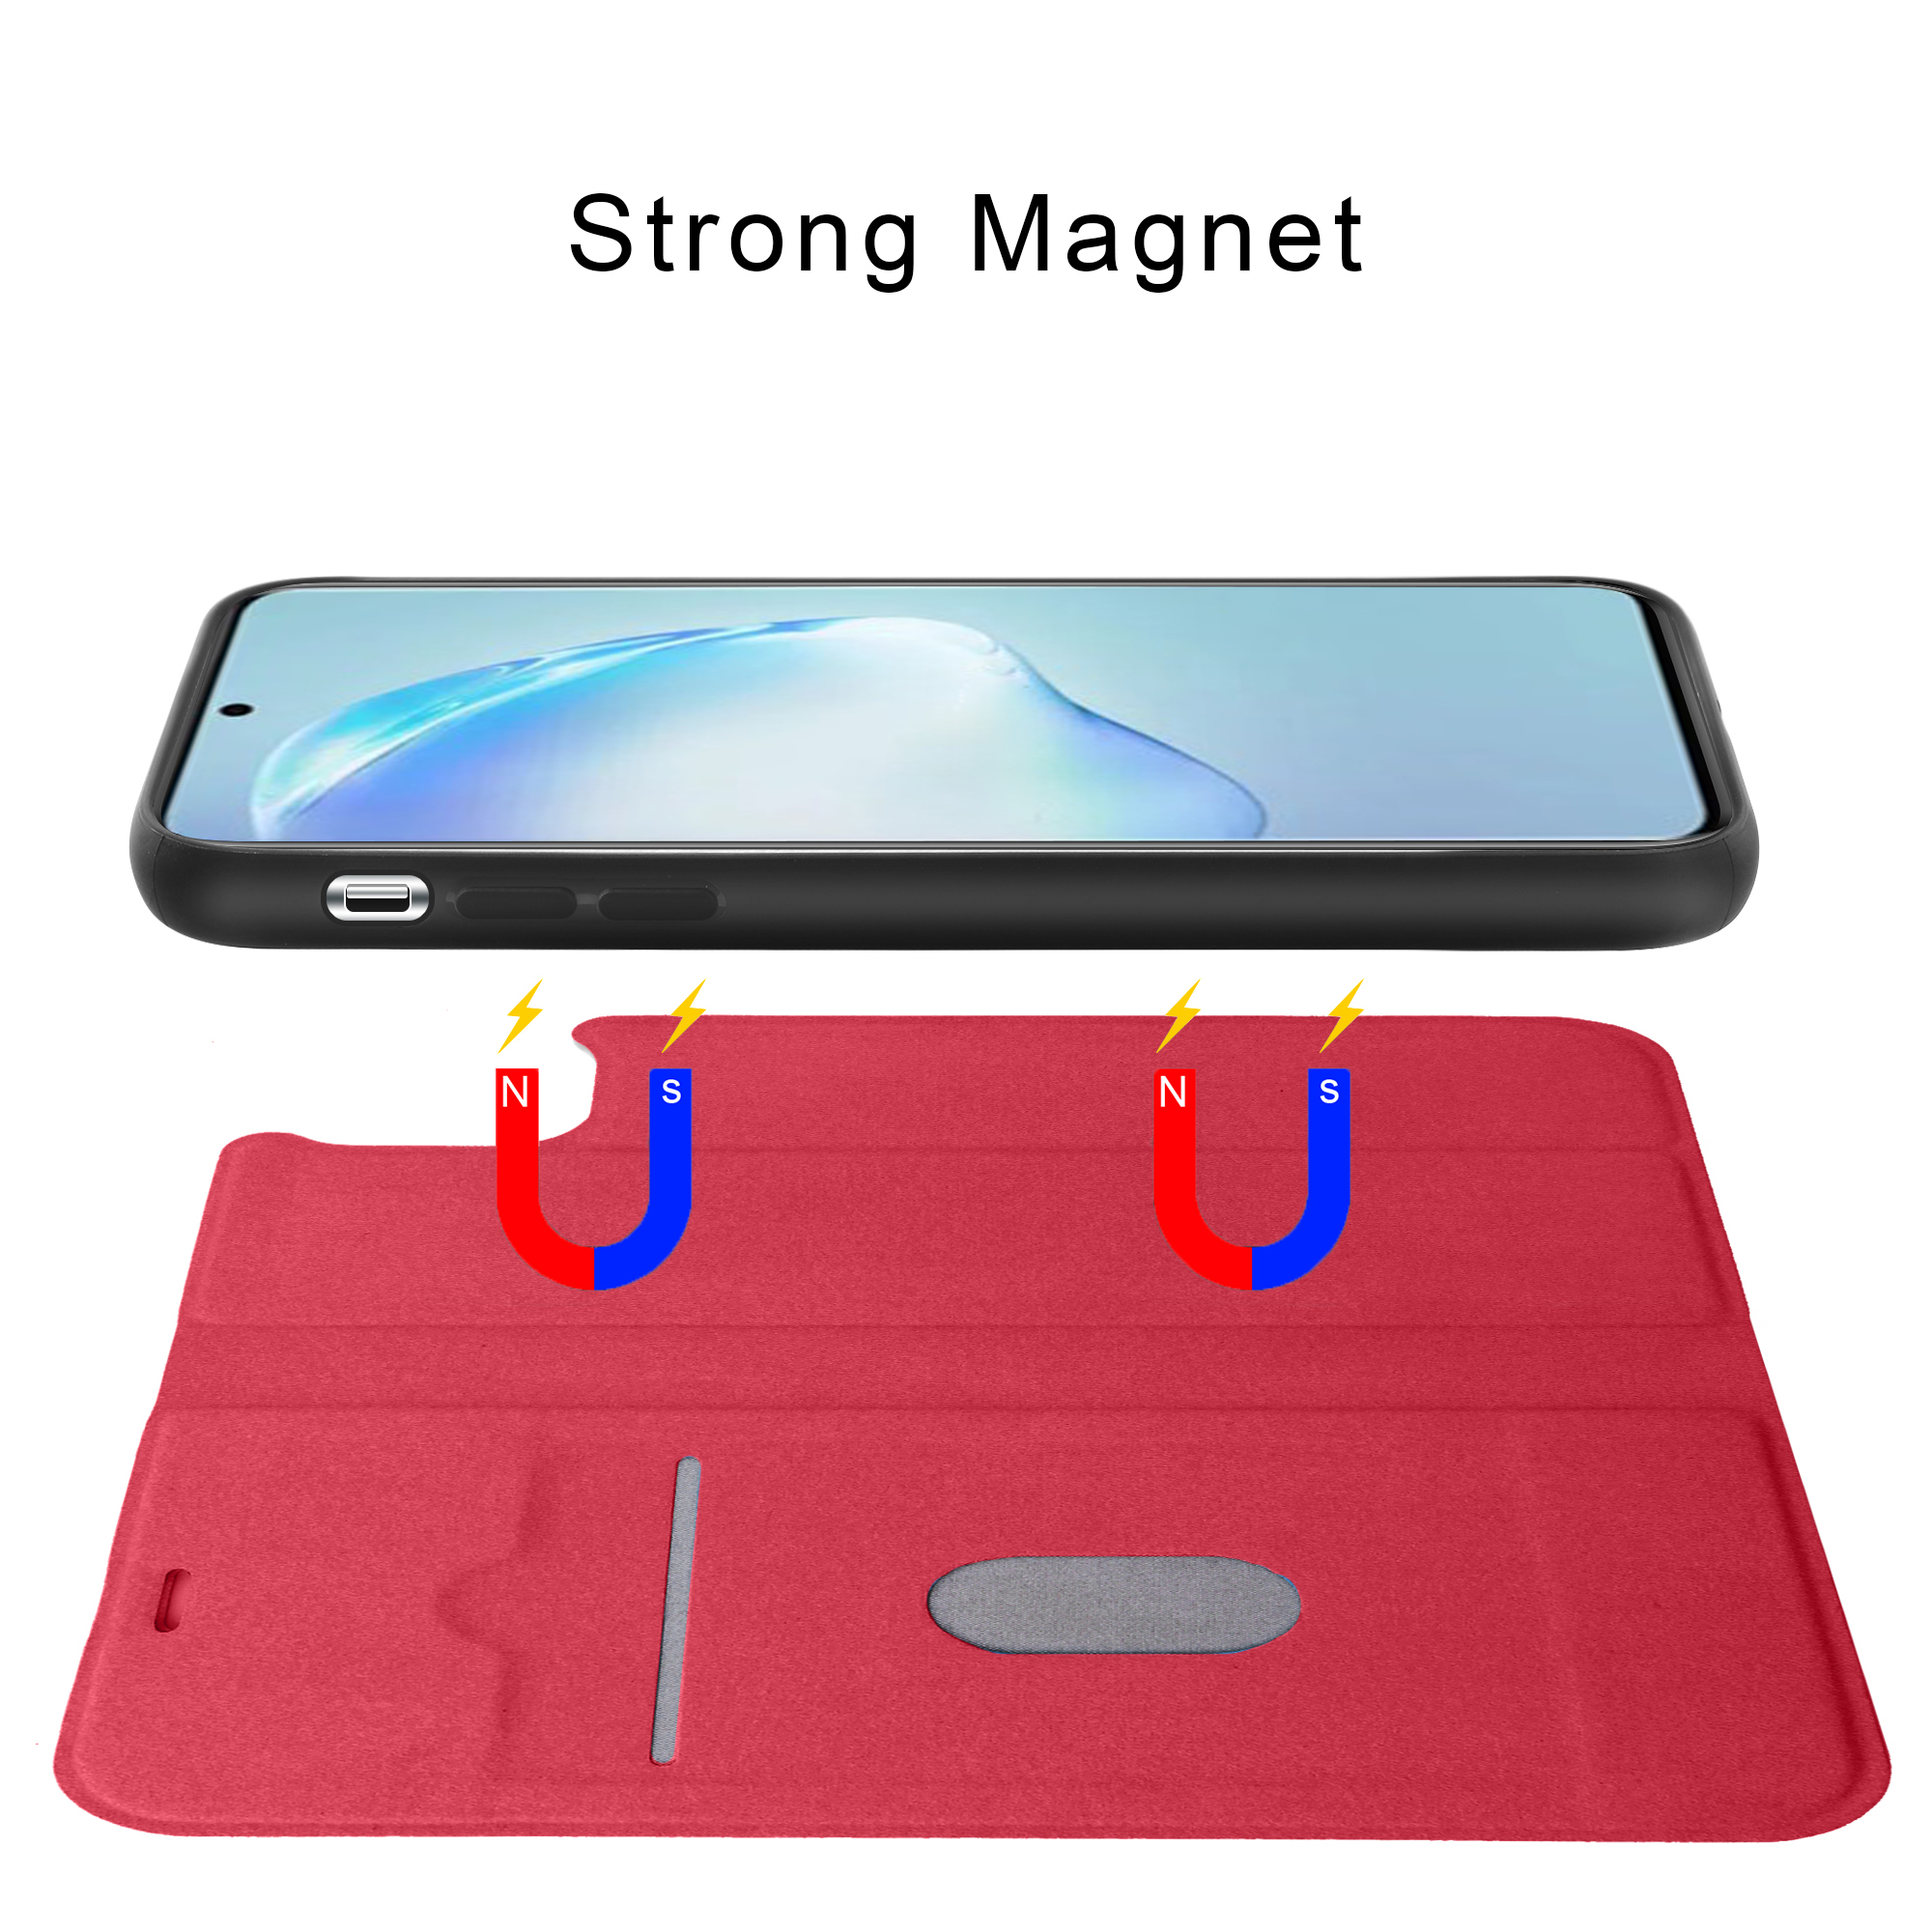 rfid blocking phone ca<strong>s</strong>e for samsung galaxy s20 s20 plus s20